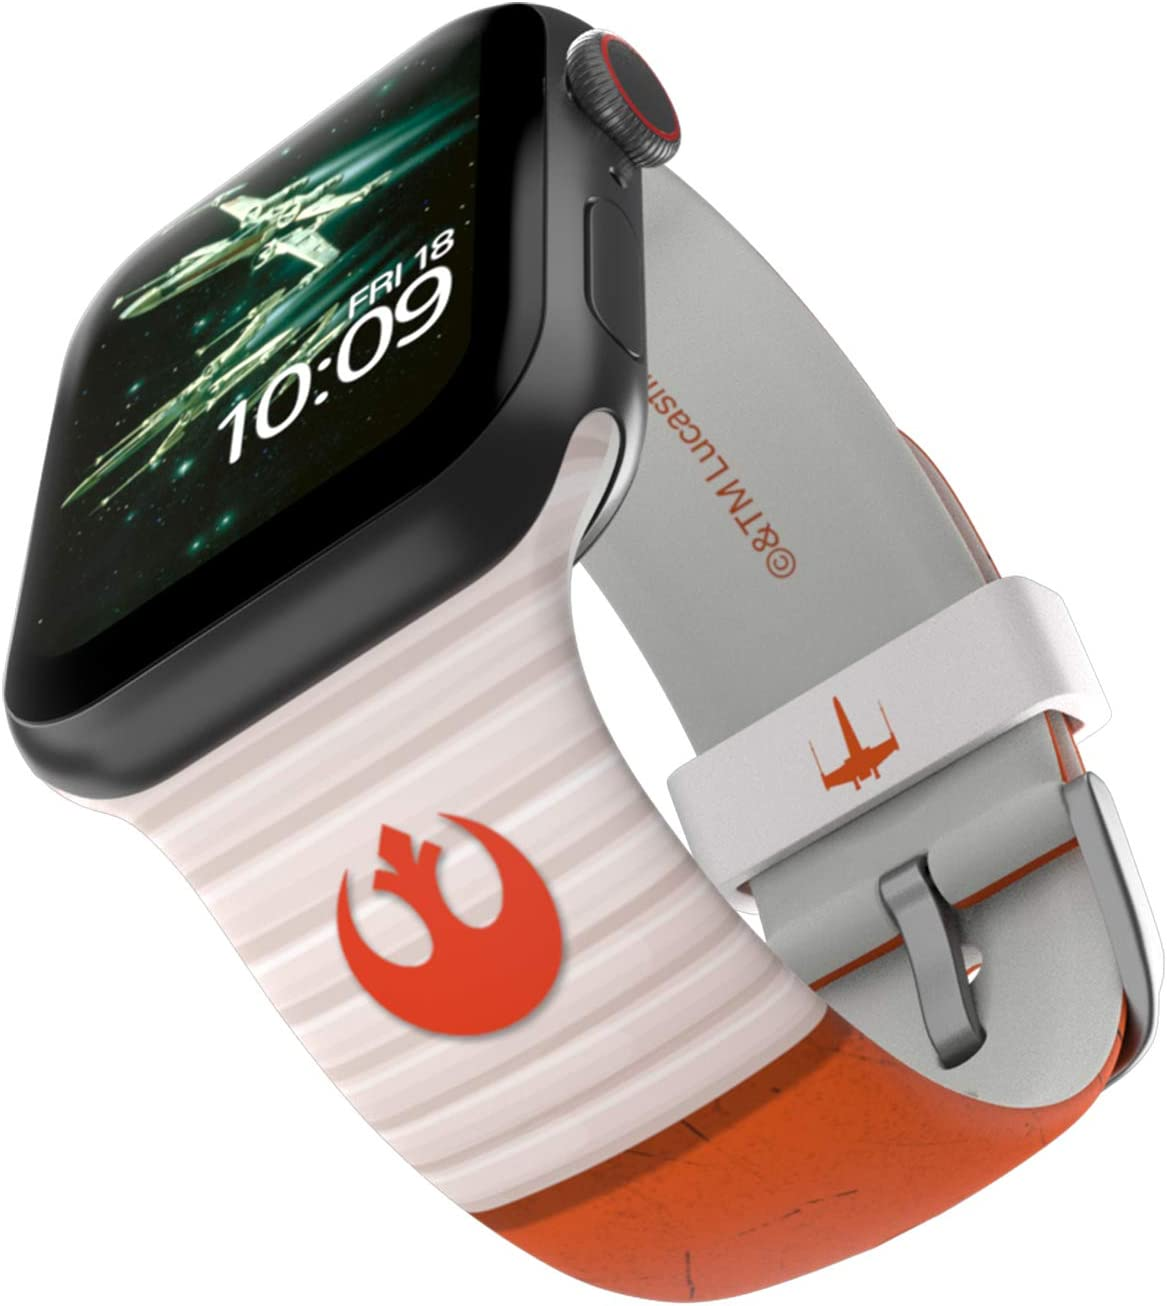 Star Wars - Rebel Classic Edition – Officially Licensed Silicone Smartwatch Band Compatible with Apple Watch (not Included) - Fits 38mm, 40mm, 42mm and 44mm